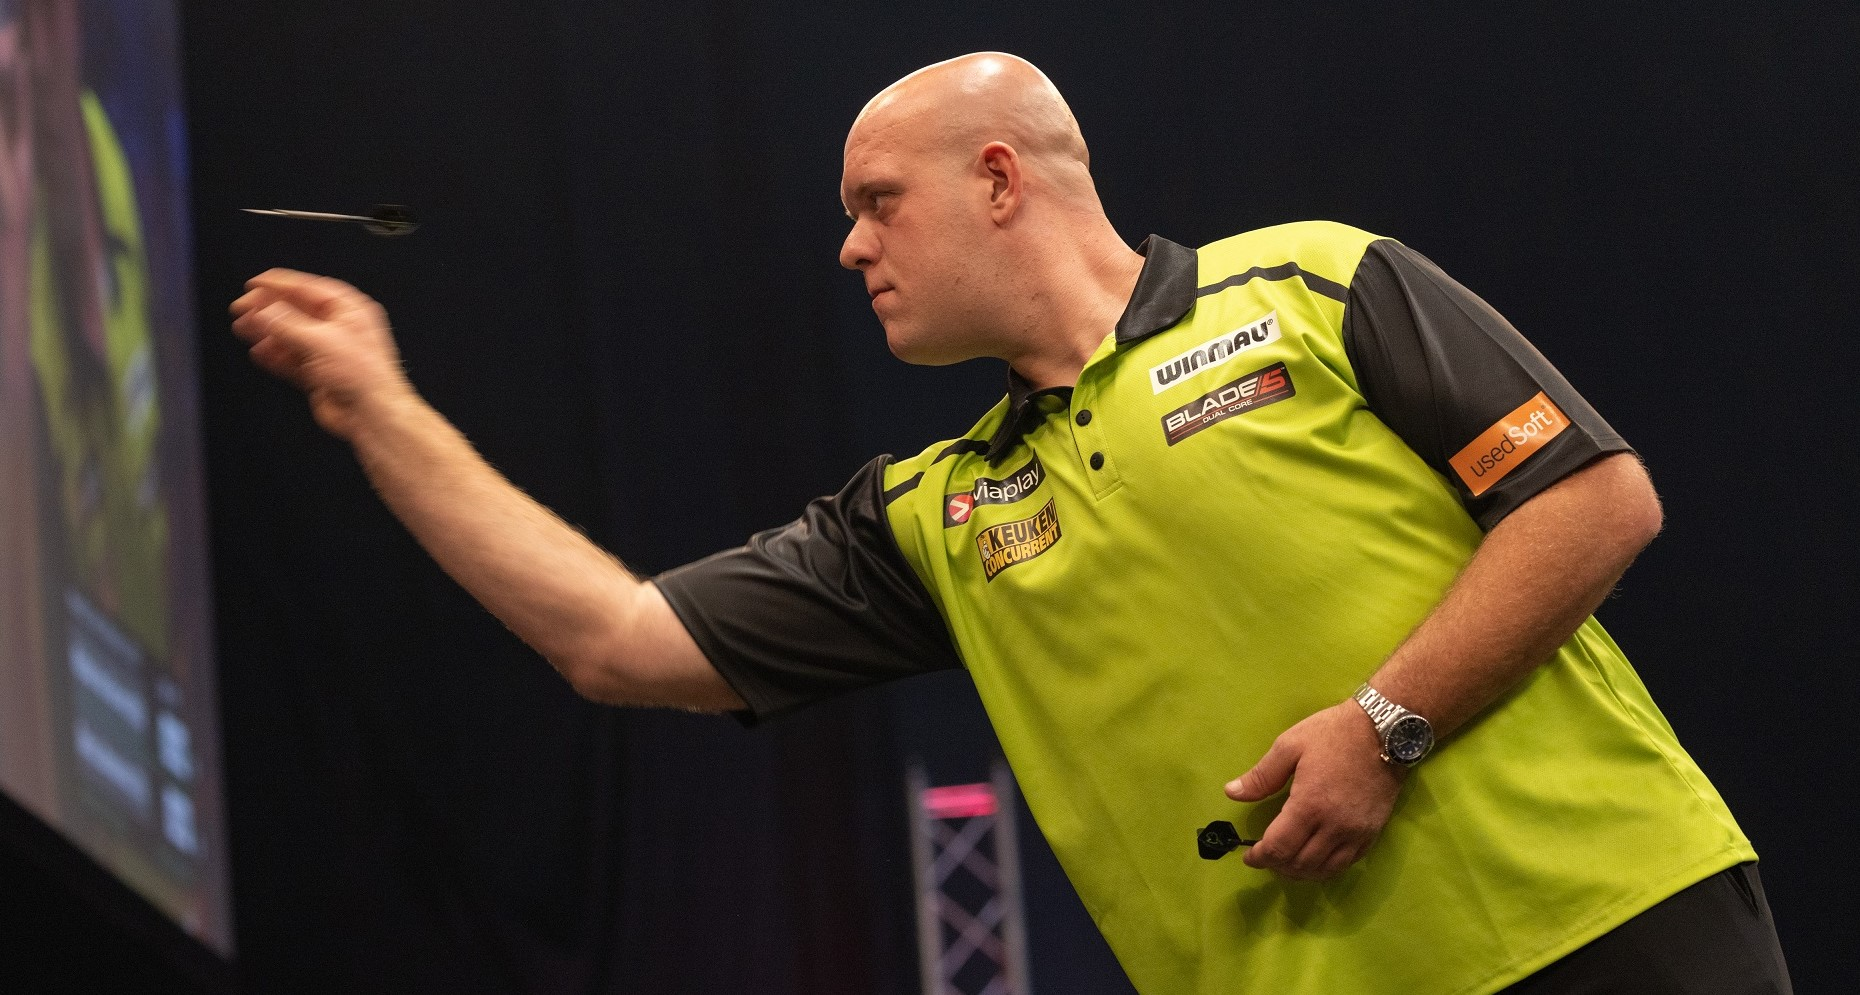 This is how to watch PDC Super Series 7 live this week